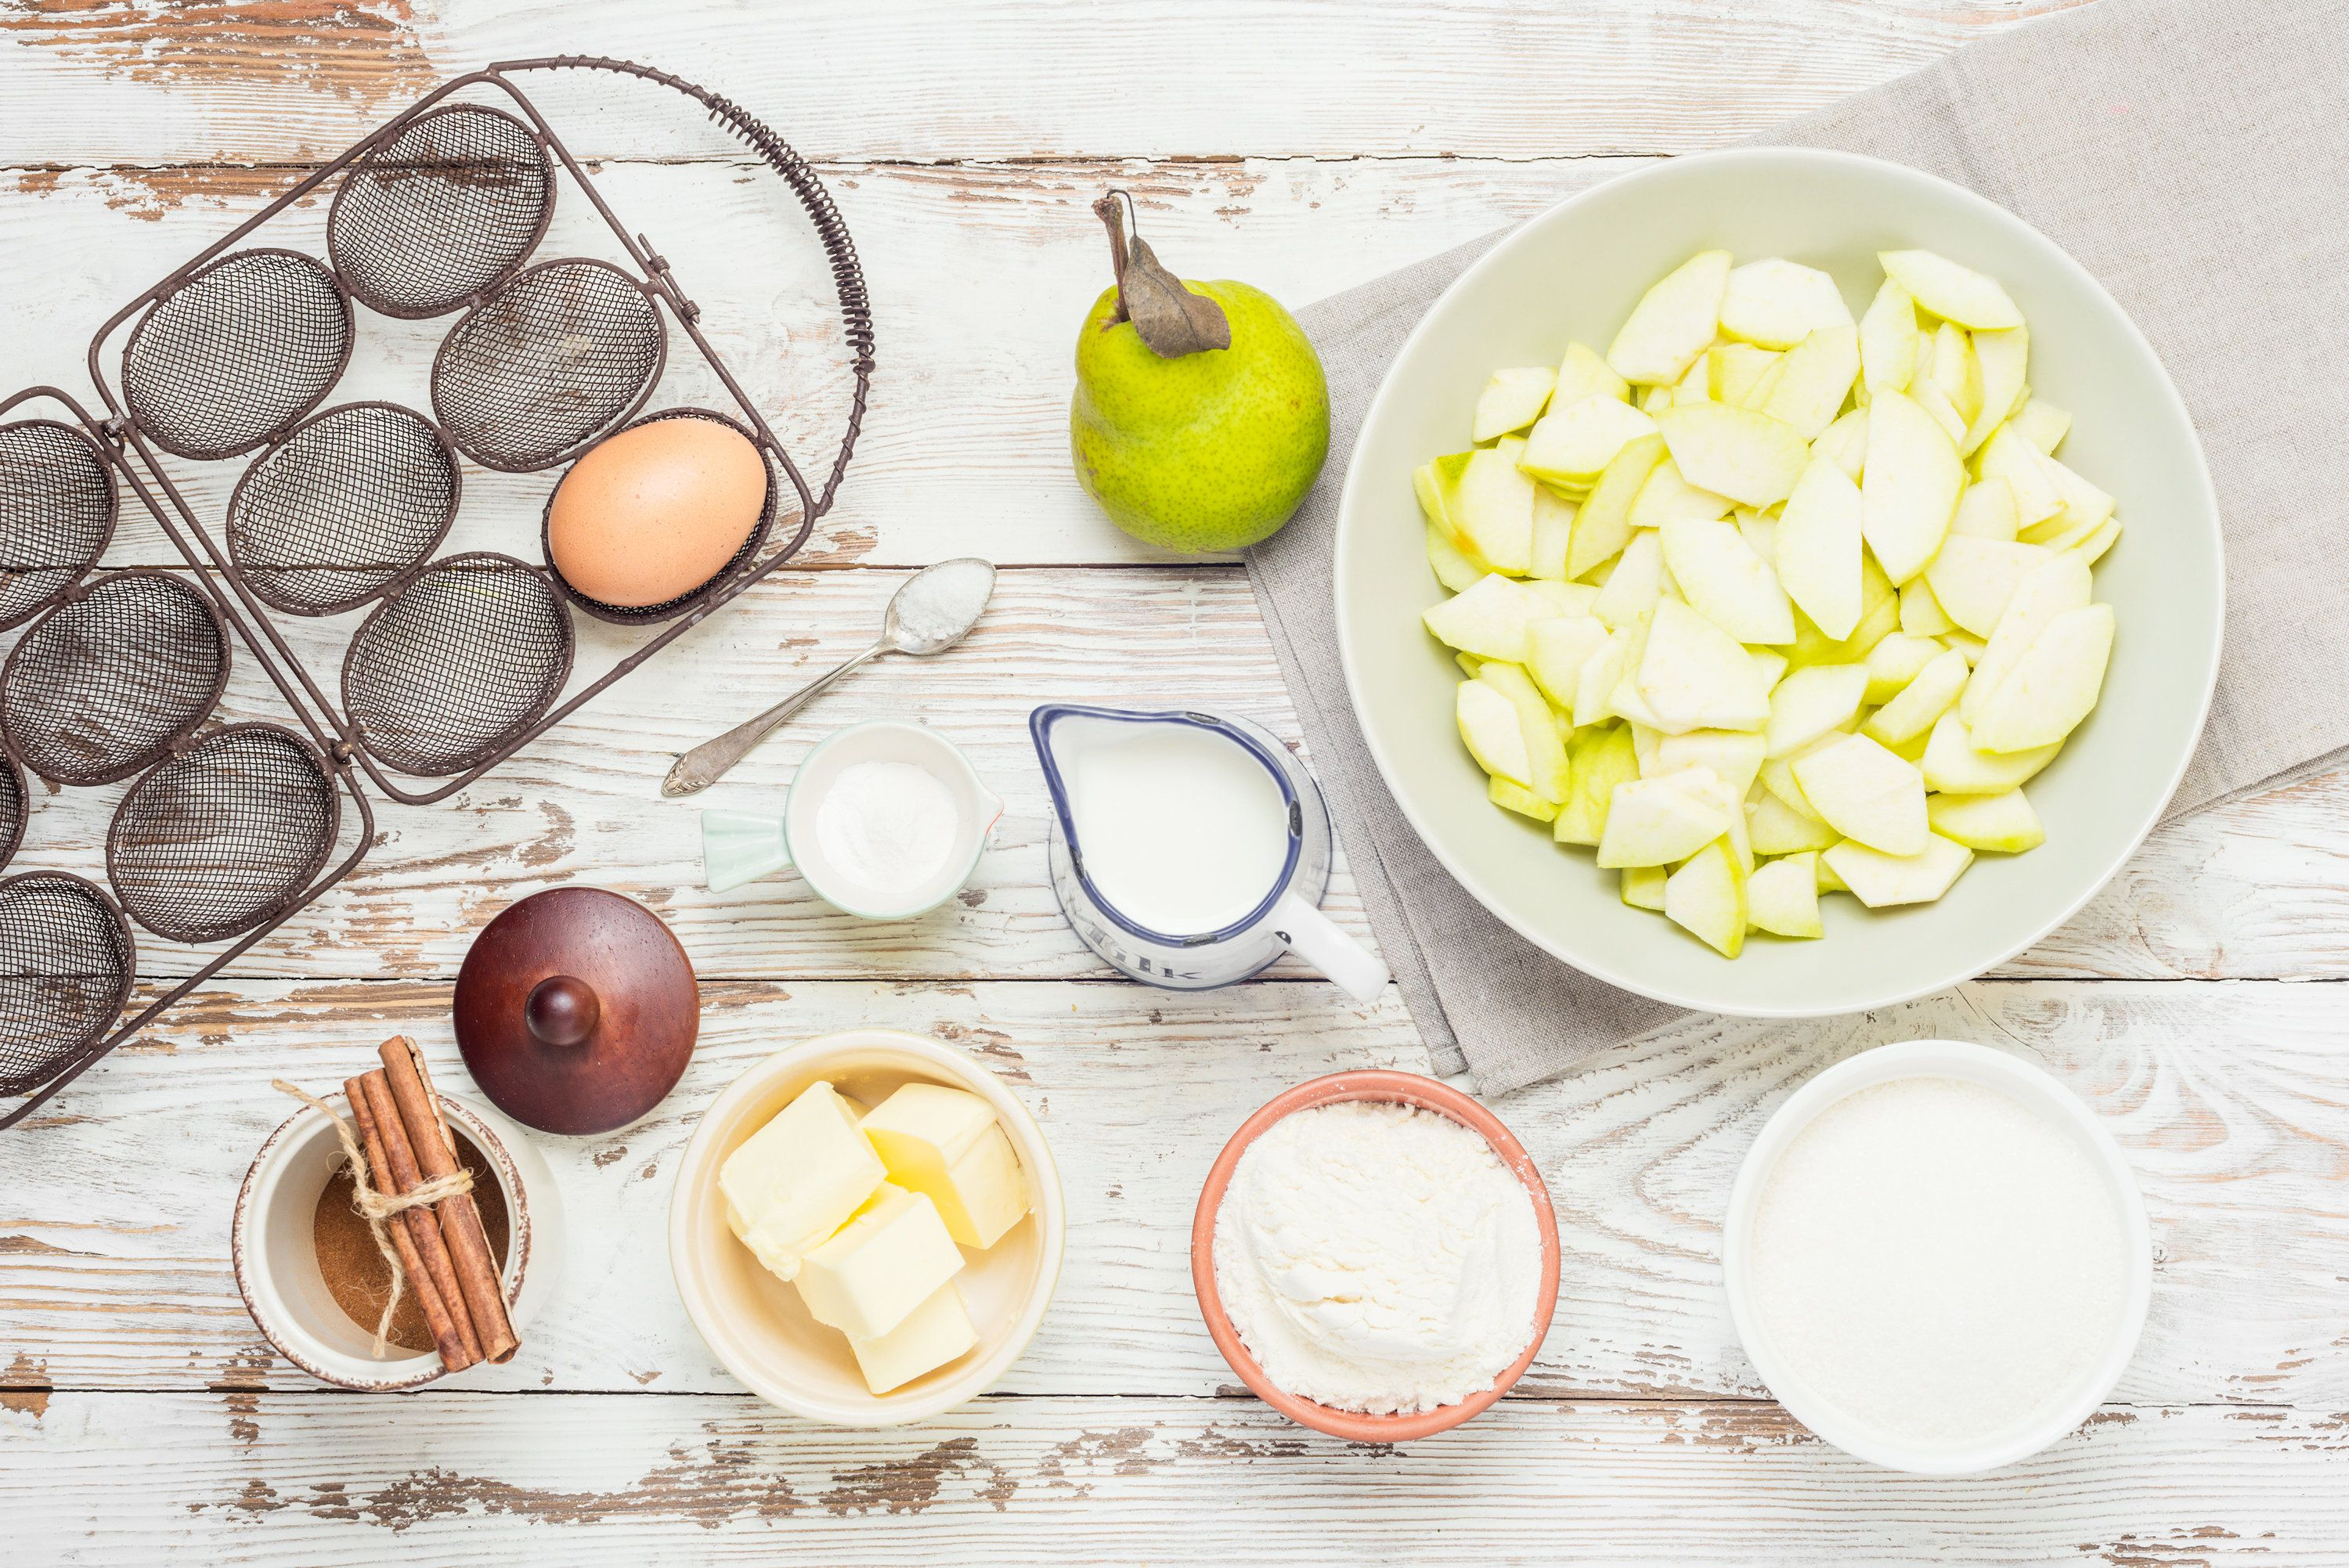 Ingredients for making a pear cobbler